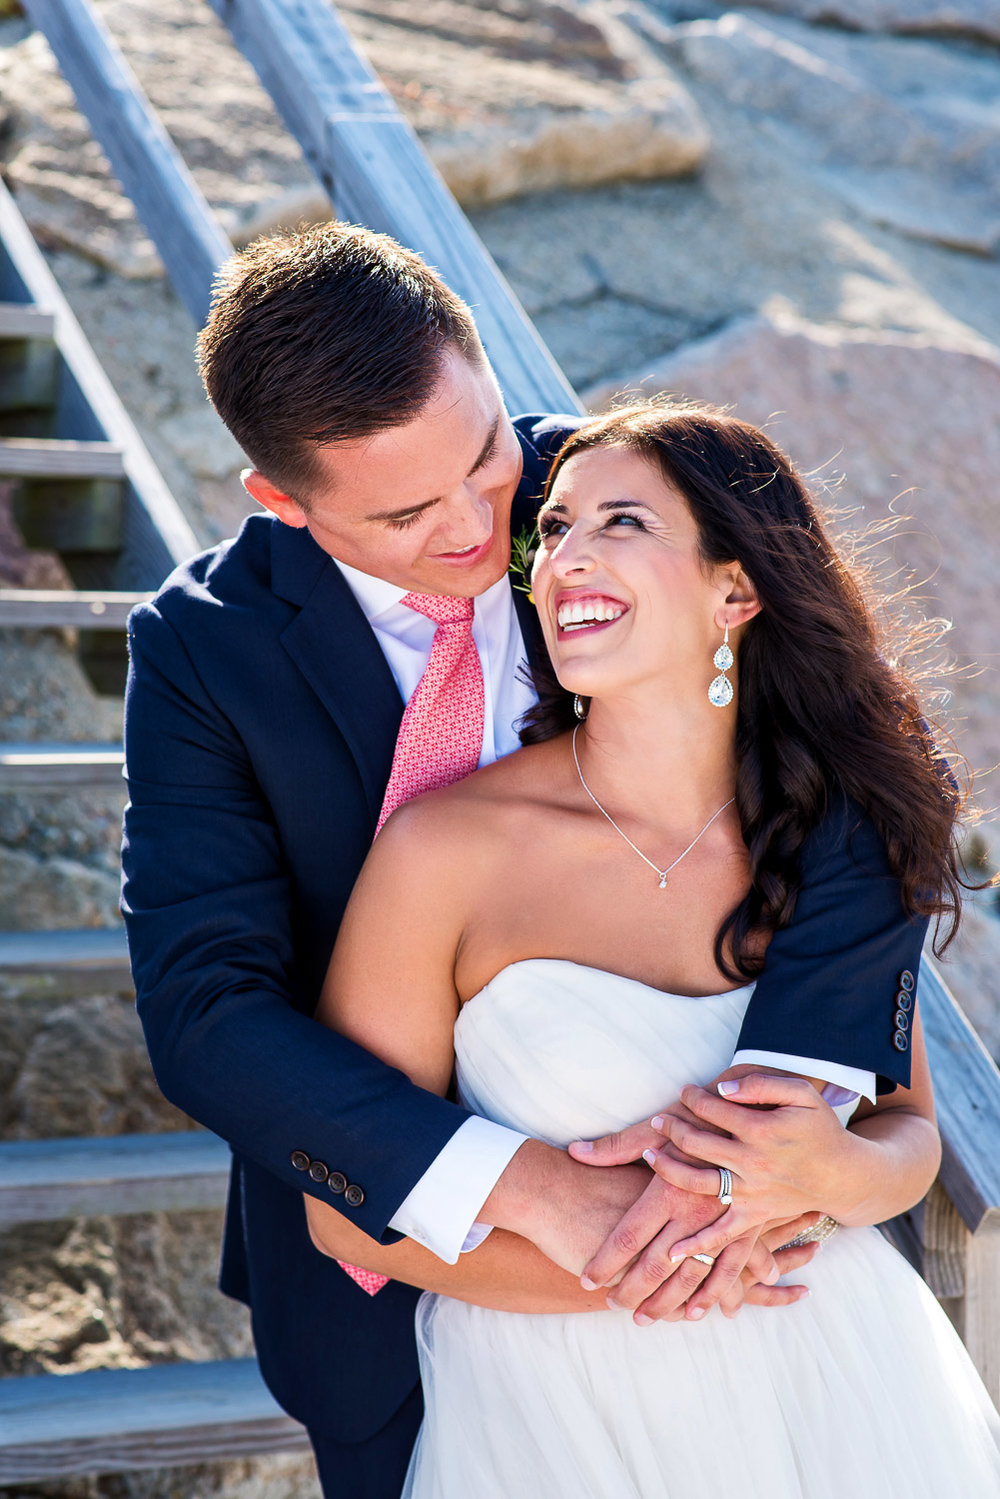 Wedding Photography Experience -